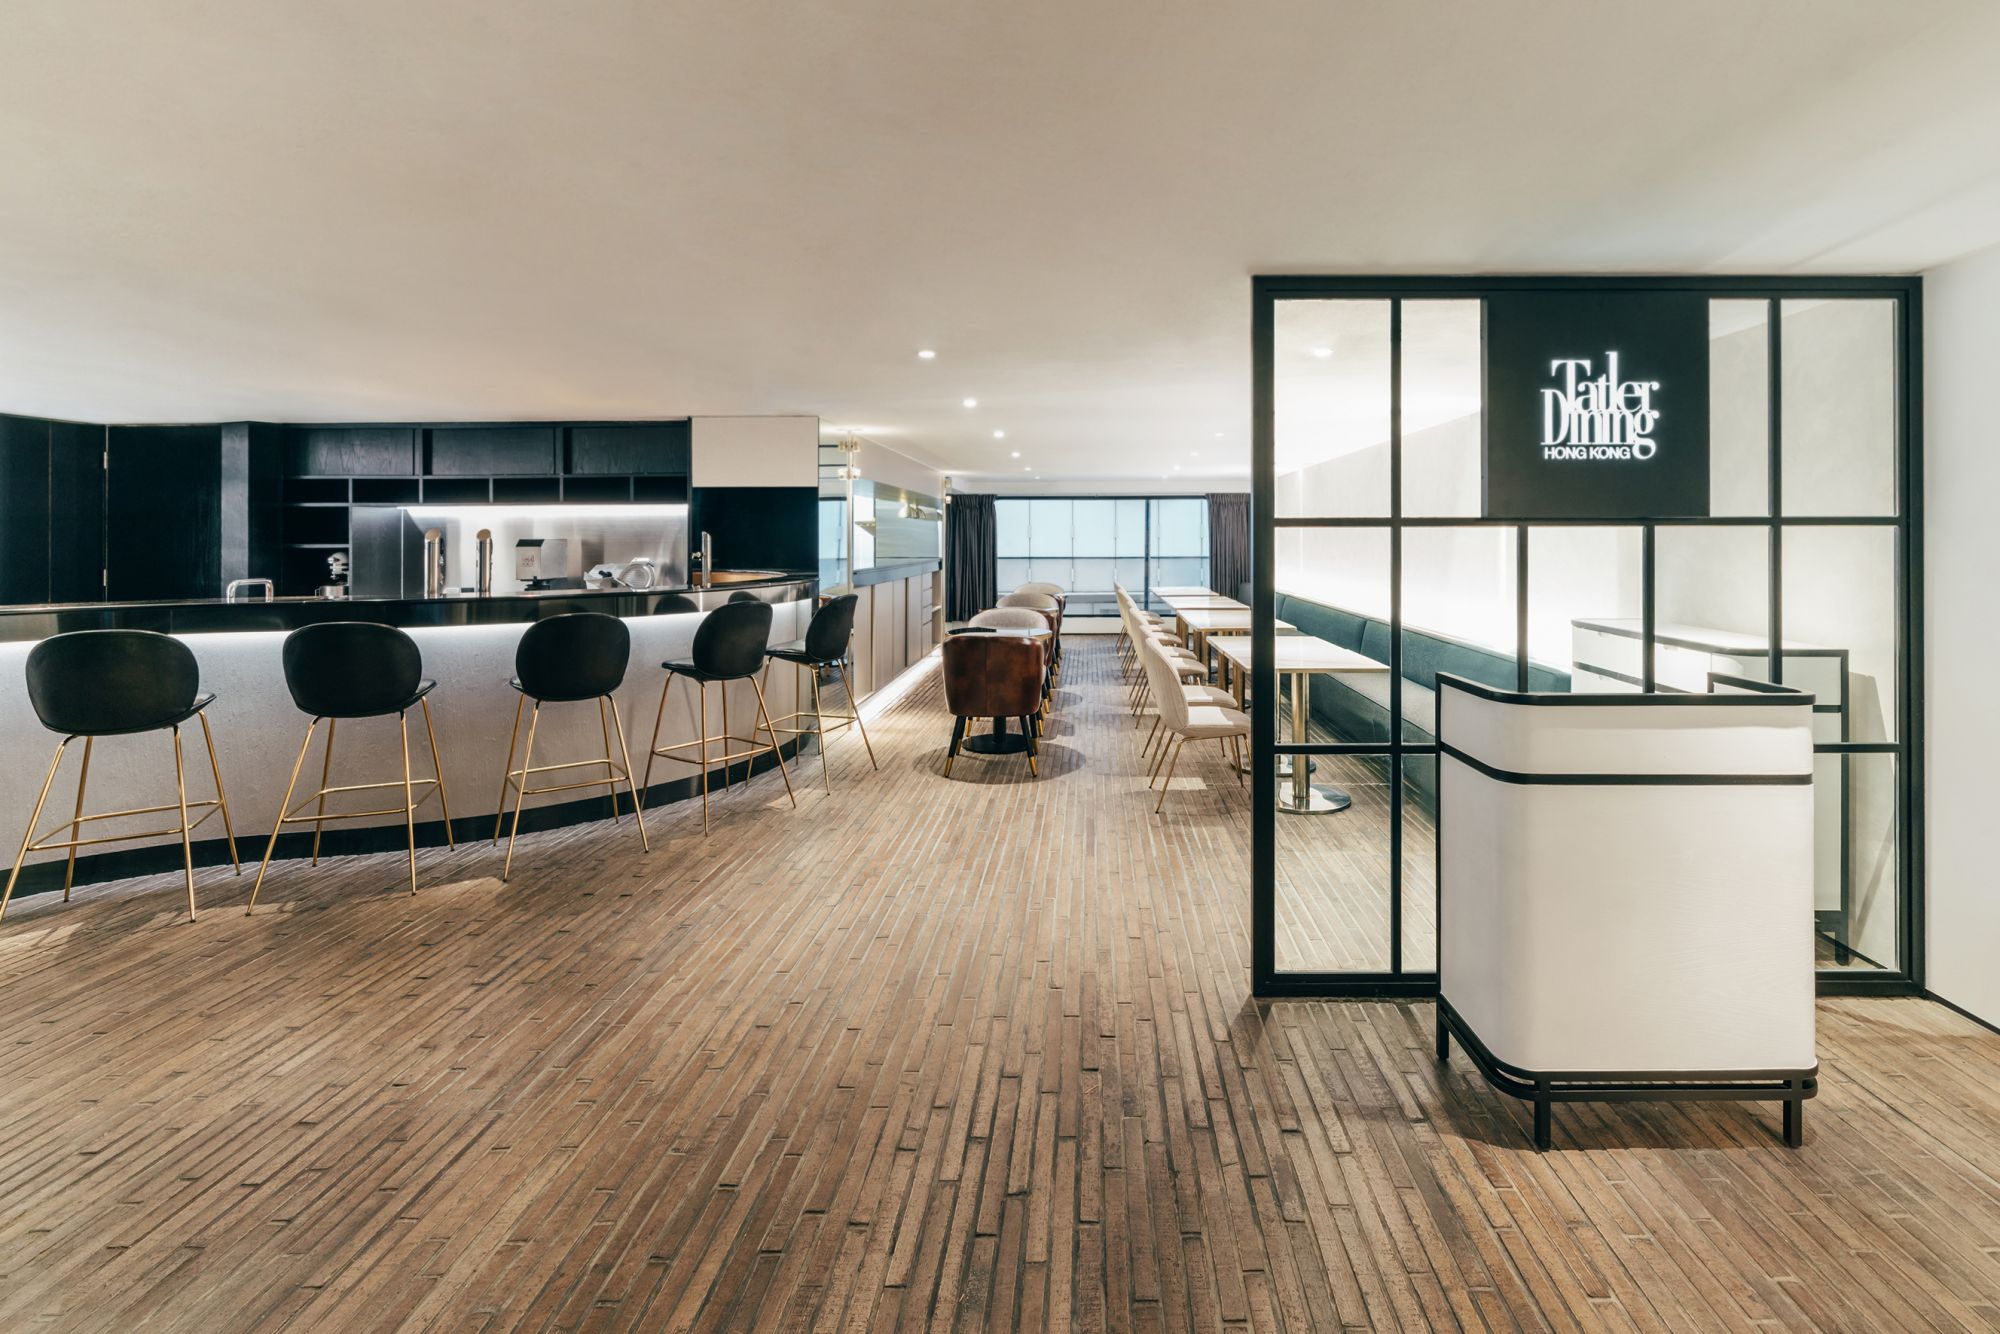 All About Tatler Dining Kitchen At Haus, Hong Kong's New Culinary Destination